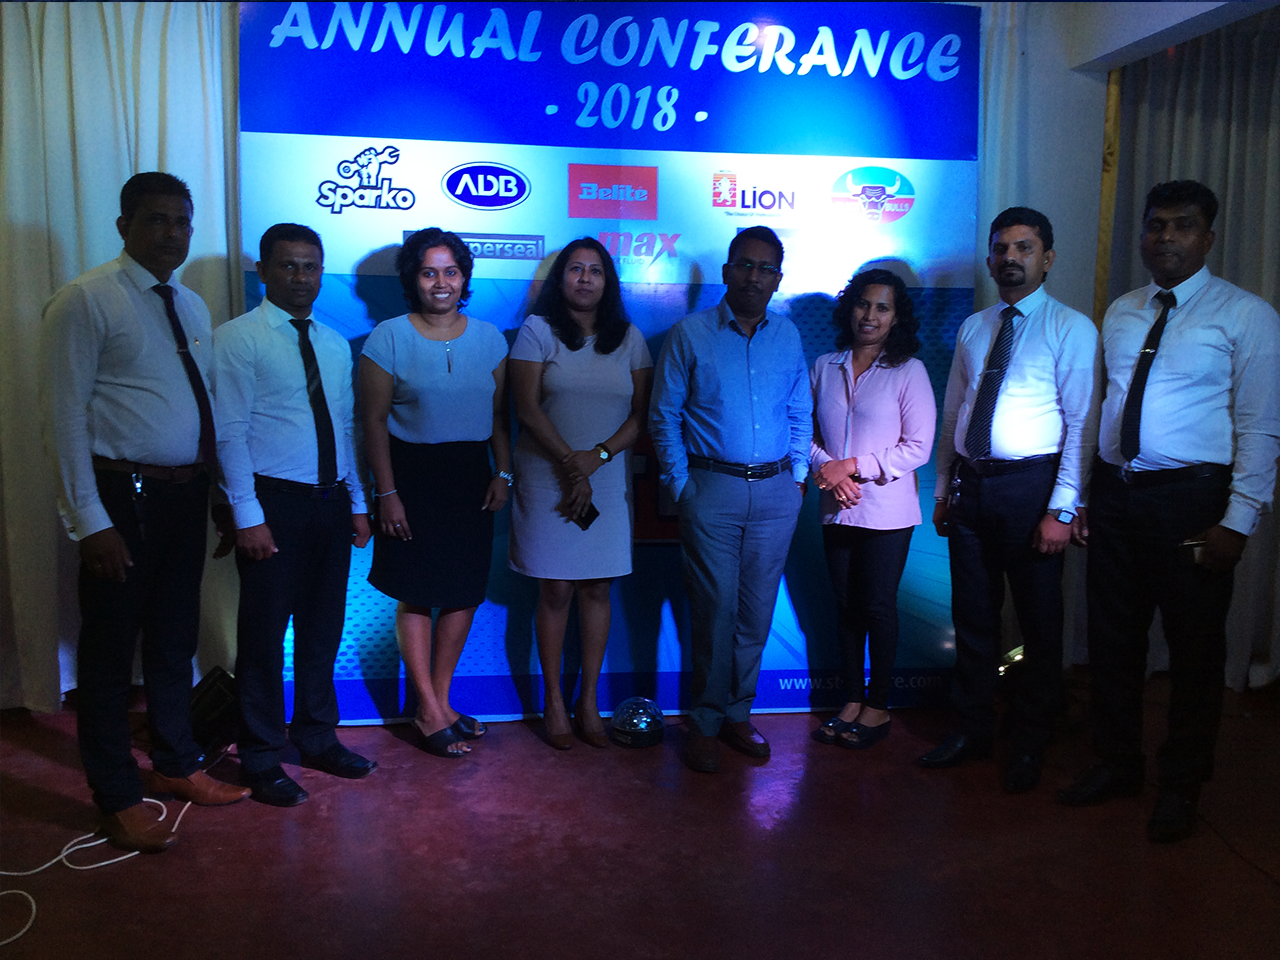 annual-conference-24